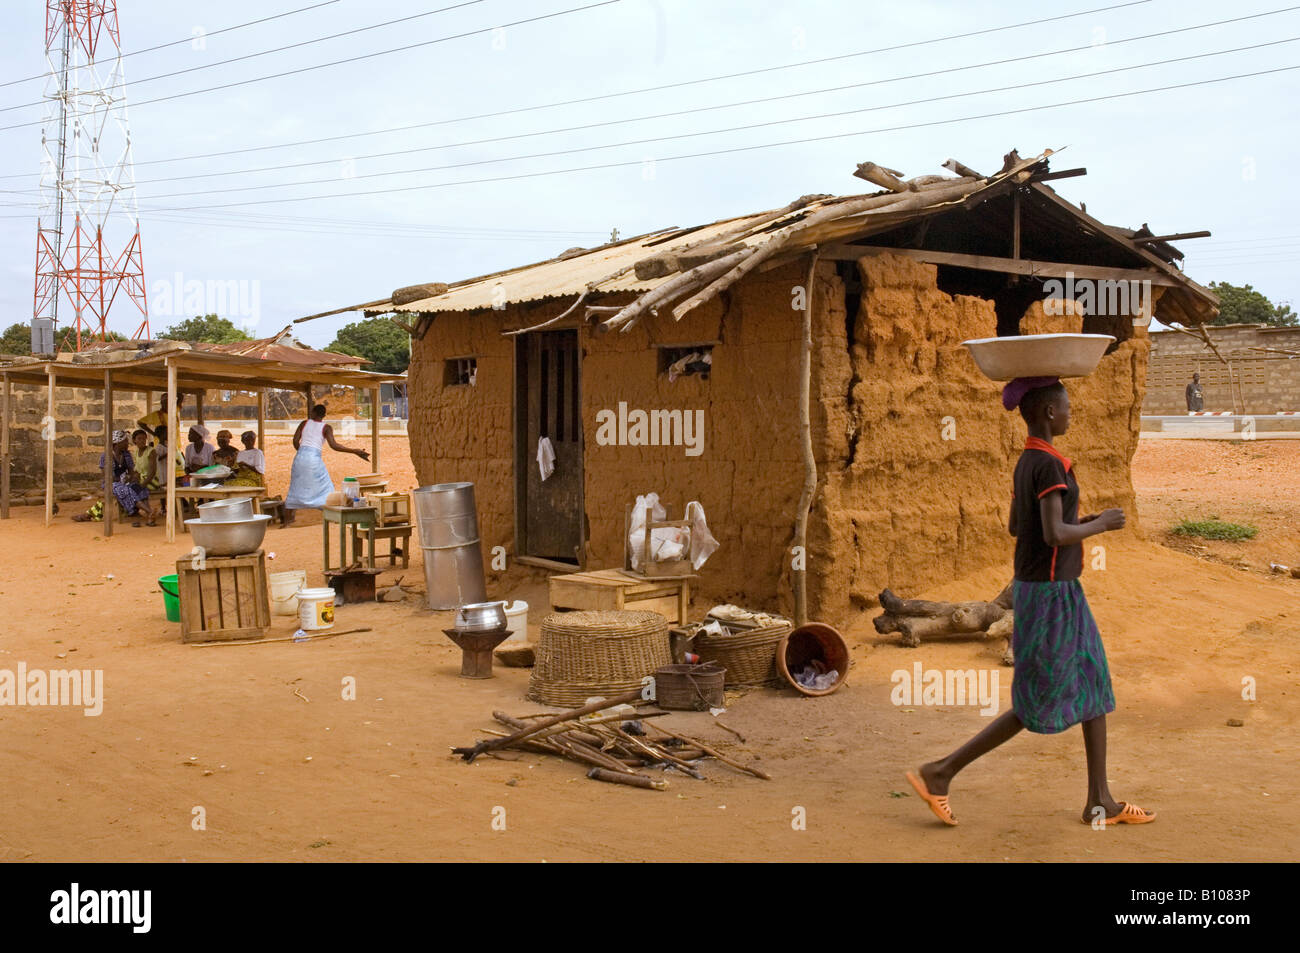 A small catering service for provision of food and drinks, Kuluedor, Ghana - Stock Image